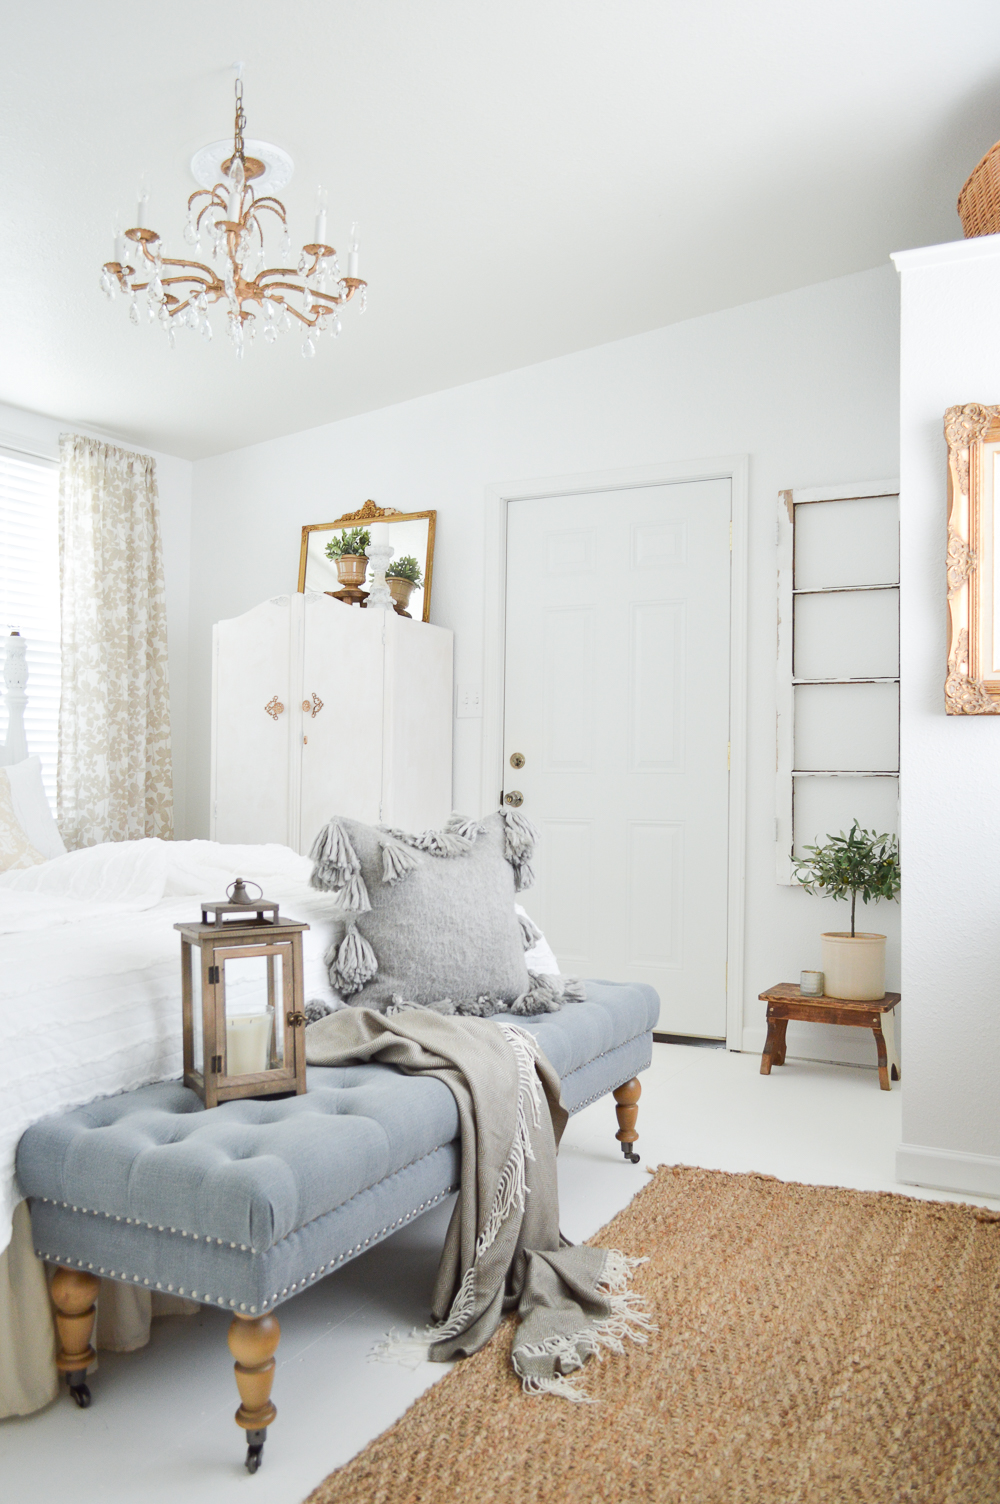 Vintage Cottage Guest Bedroom Makeover - Warm gold, white walls, tufted bench, cottage/farmhouse mix with french country accents.